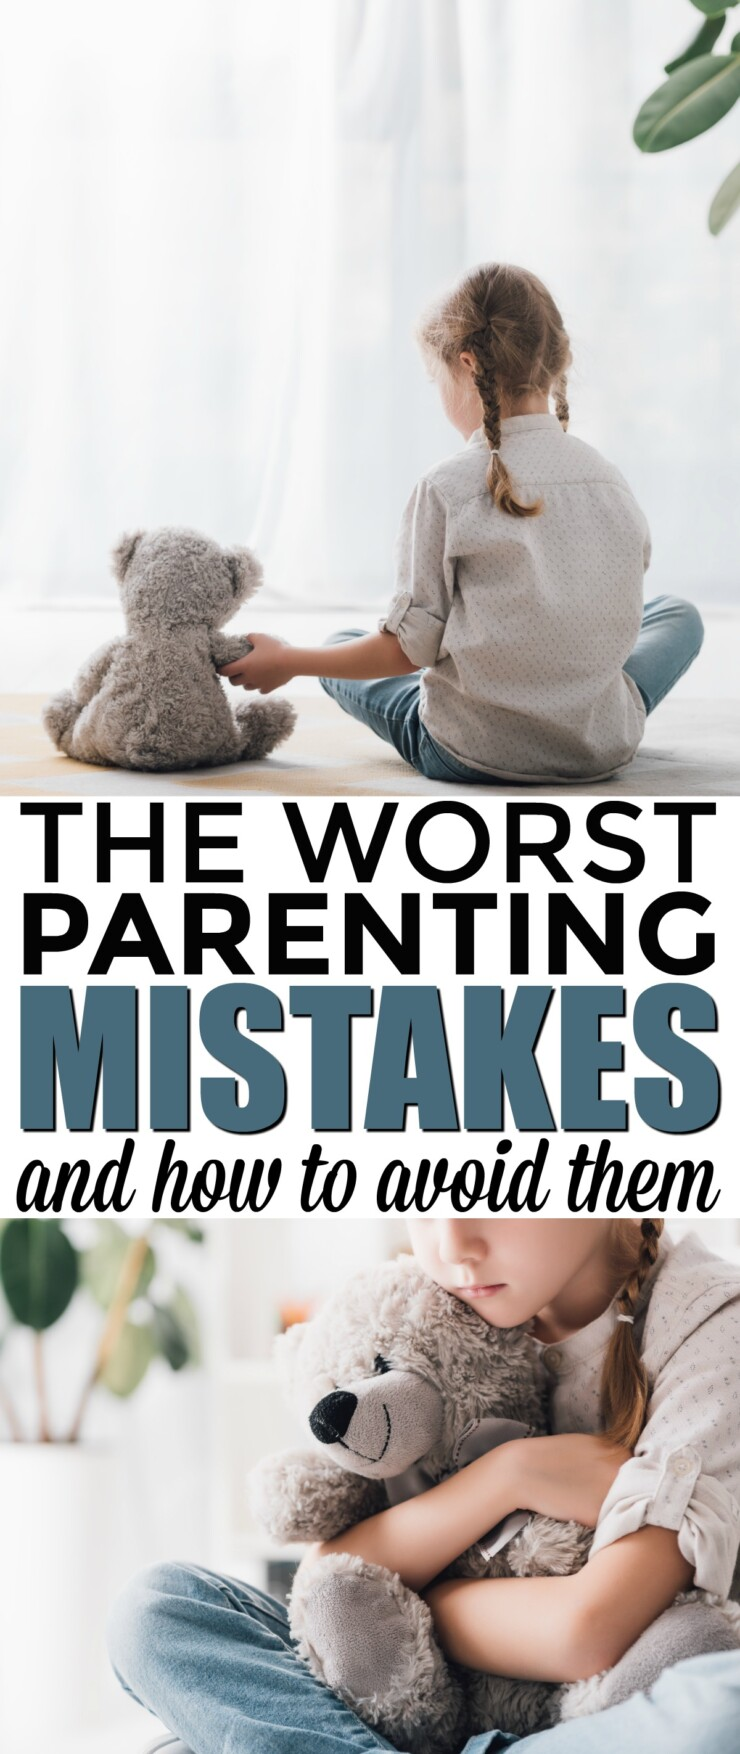 The Worst Parenting Mistakes and How to Avoid Them